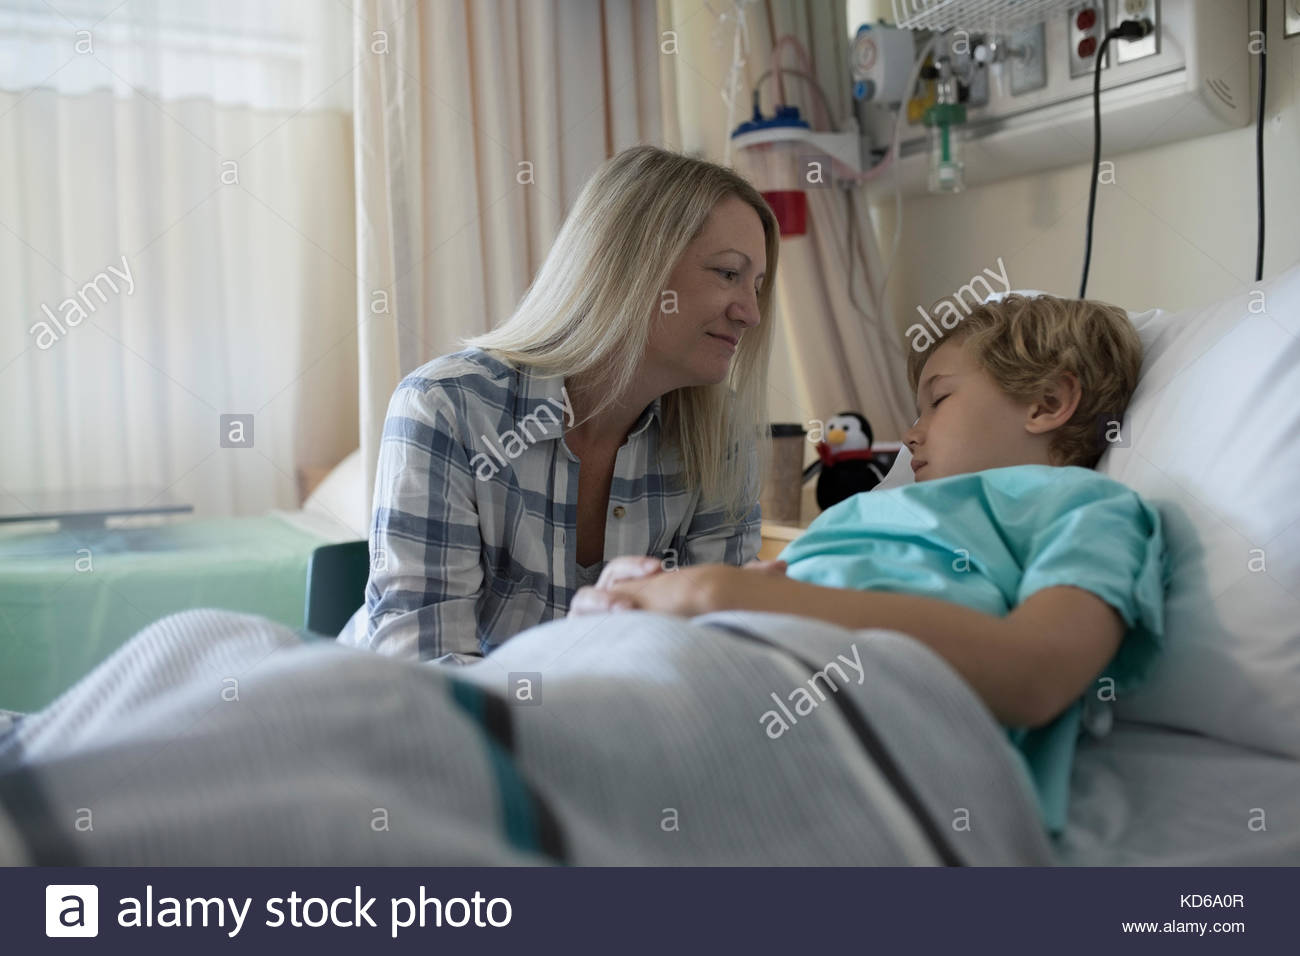 Affectionate mother watching sleeping son boy patient sleeping in hospital bed - Stock Image